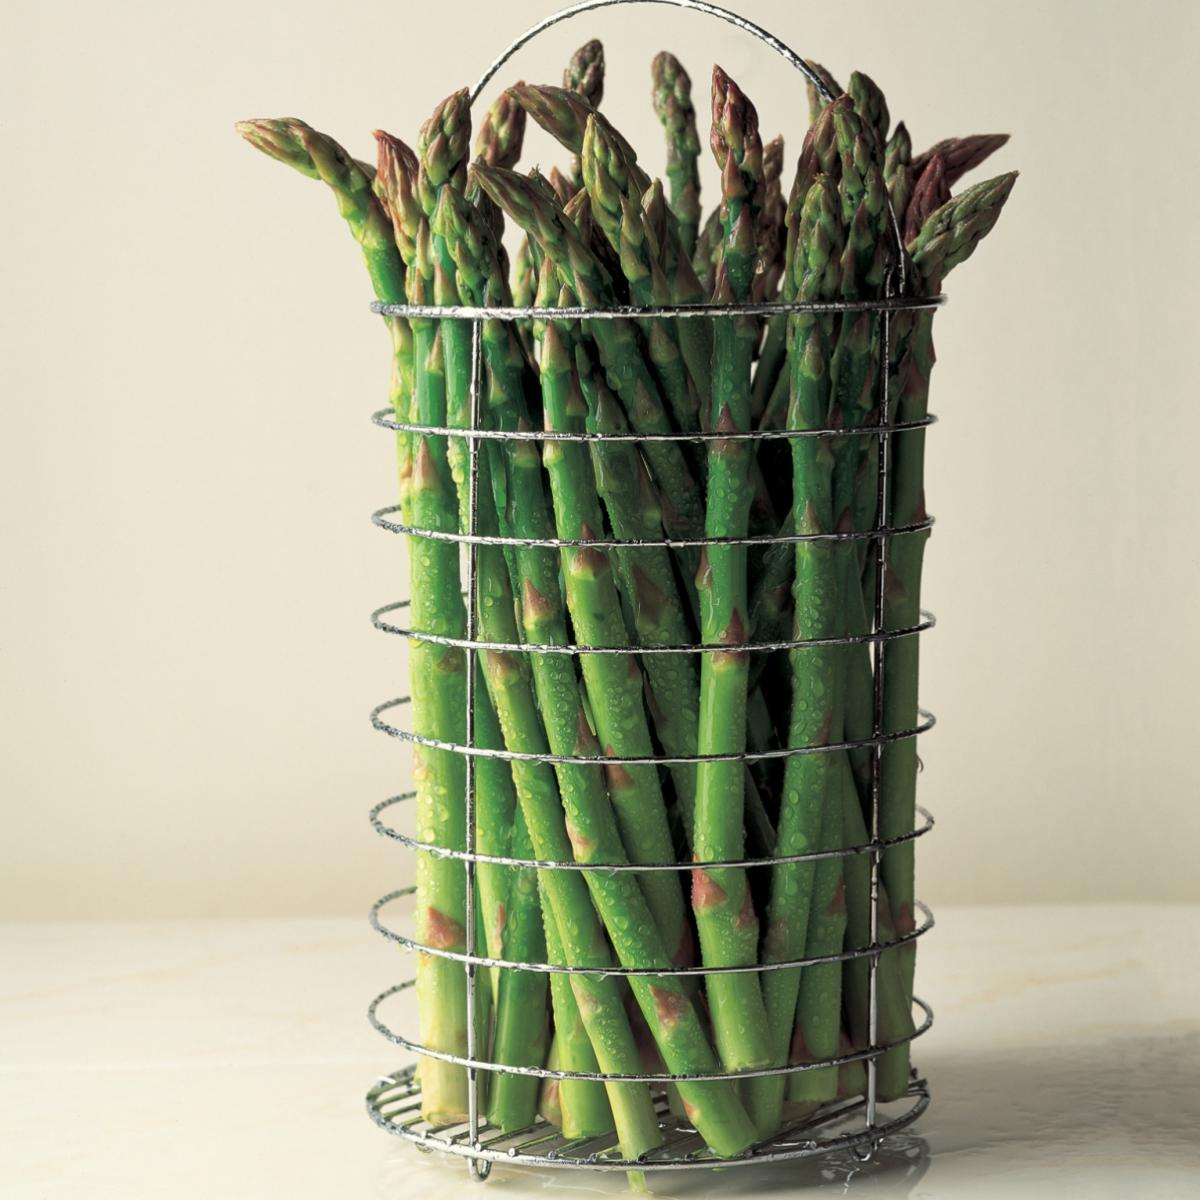 A picture of Delia's Asparagus Soup recipe